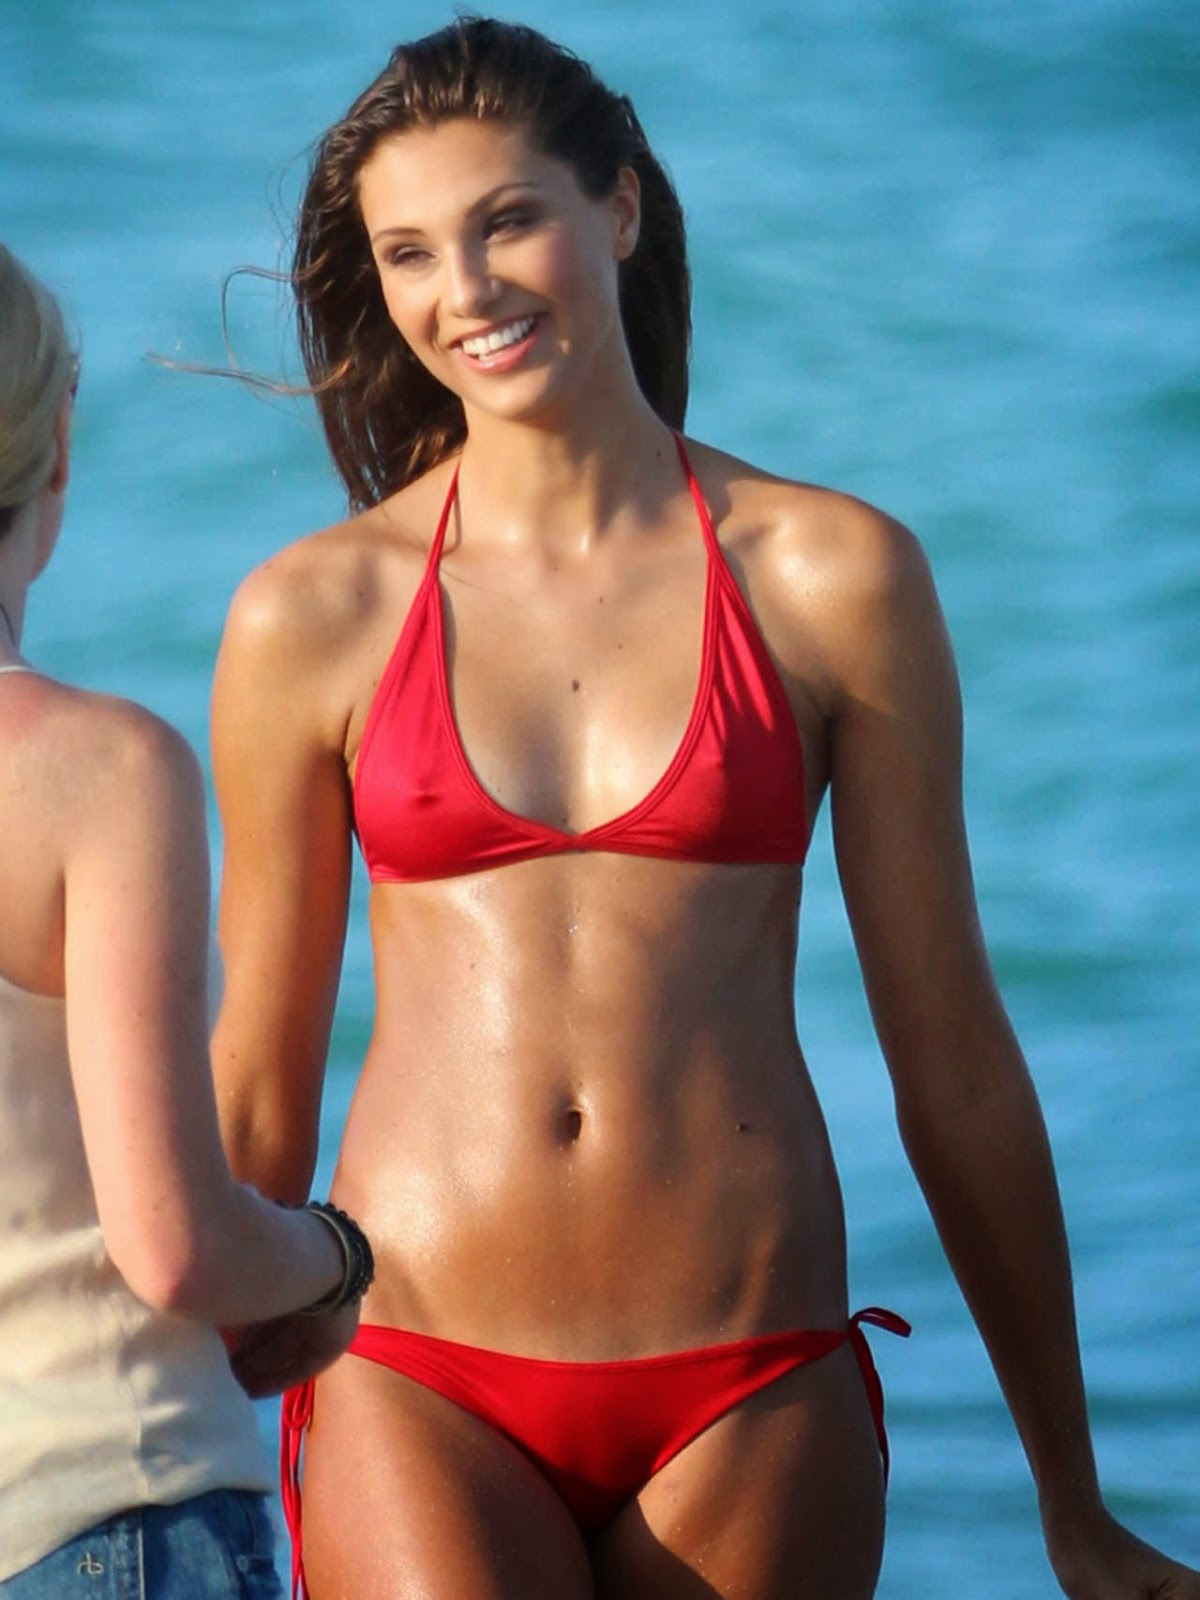 Fernanda Uesler Looking Hot In Red Bikini - Hot4Sure-3174